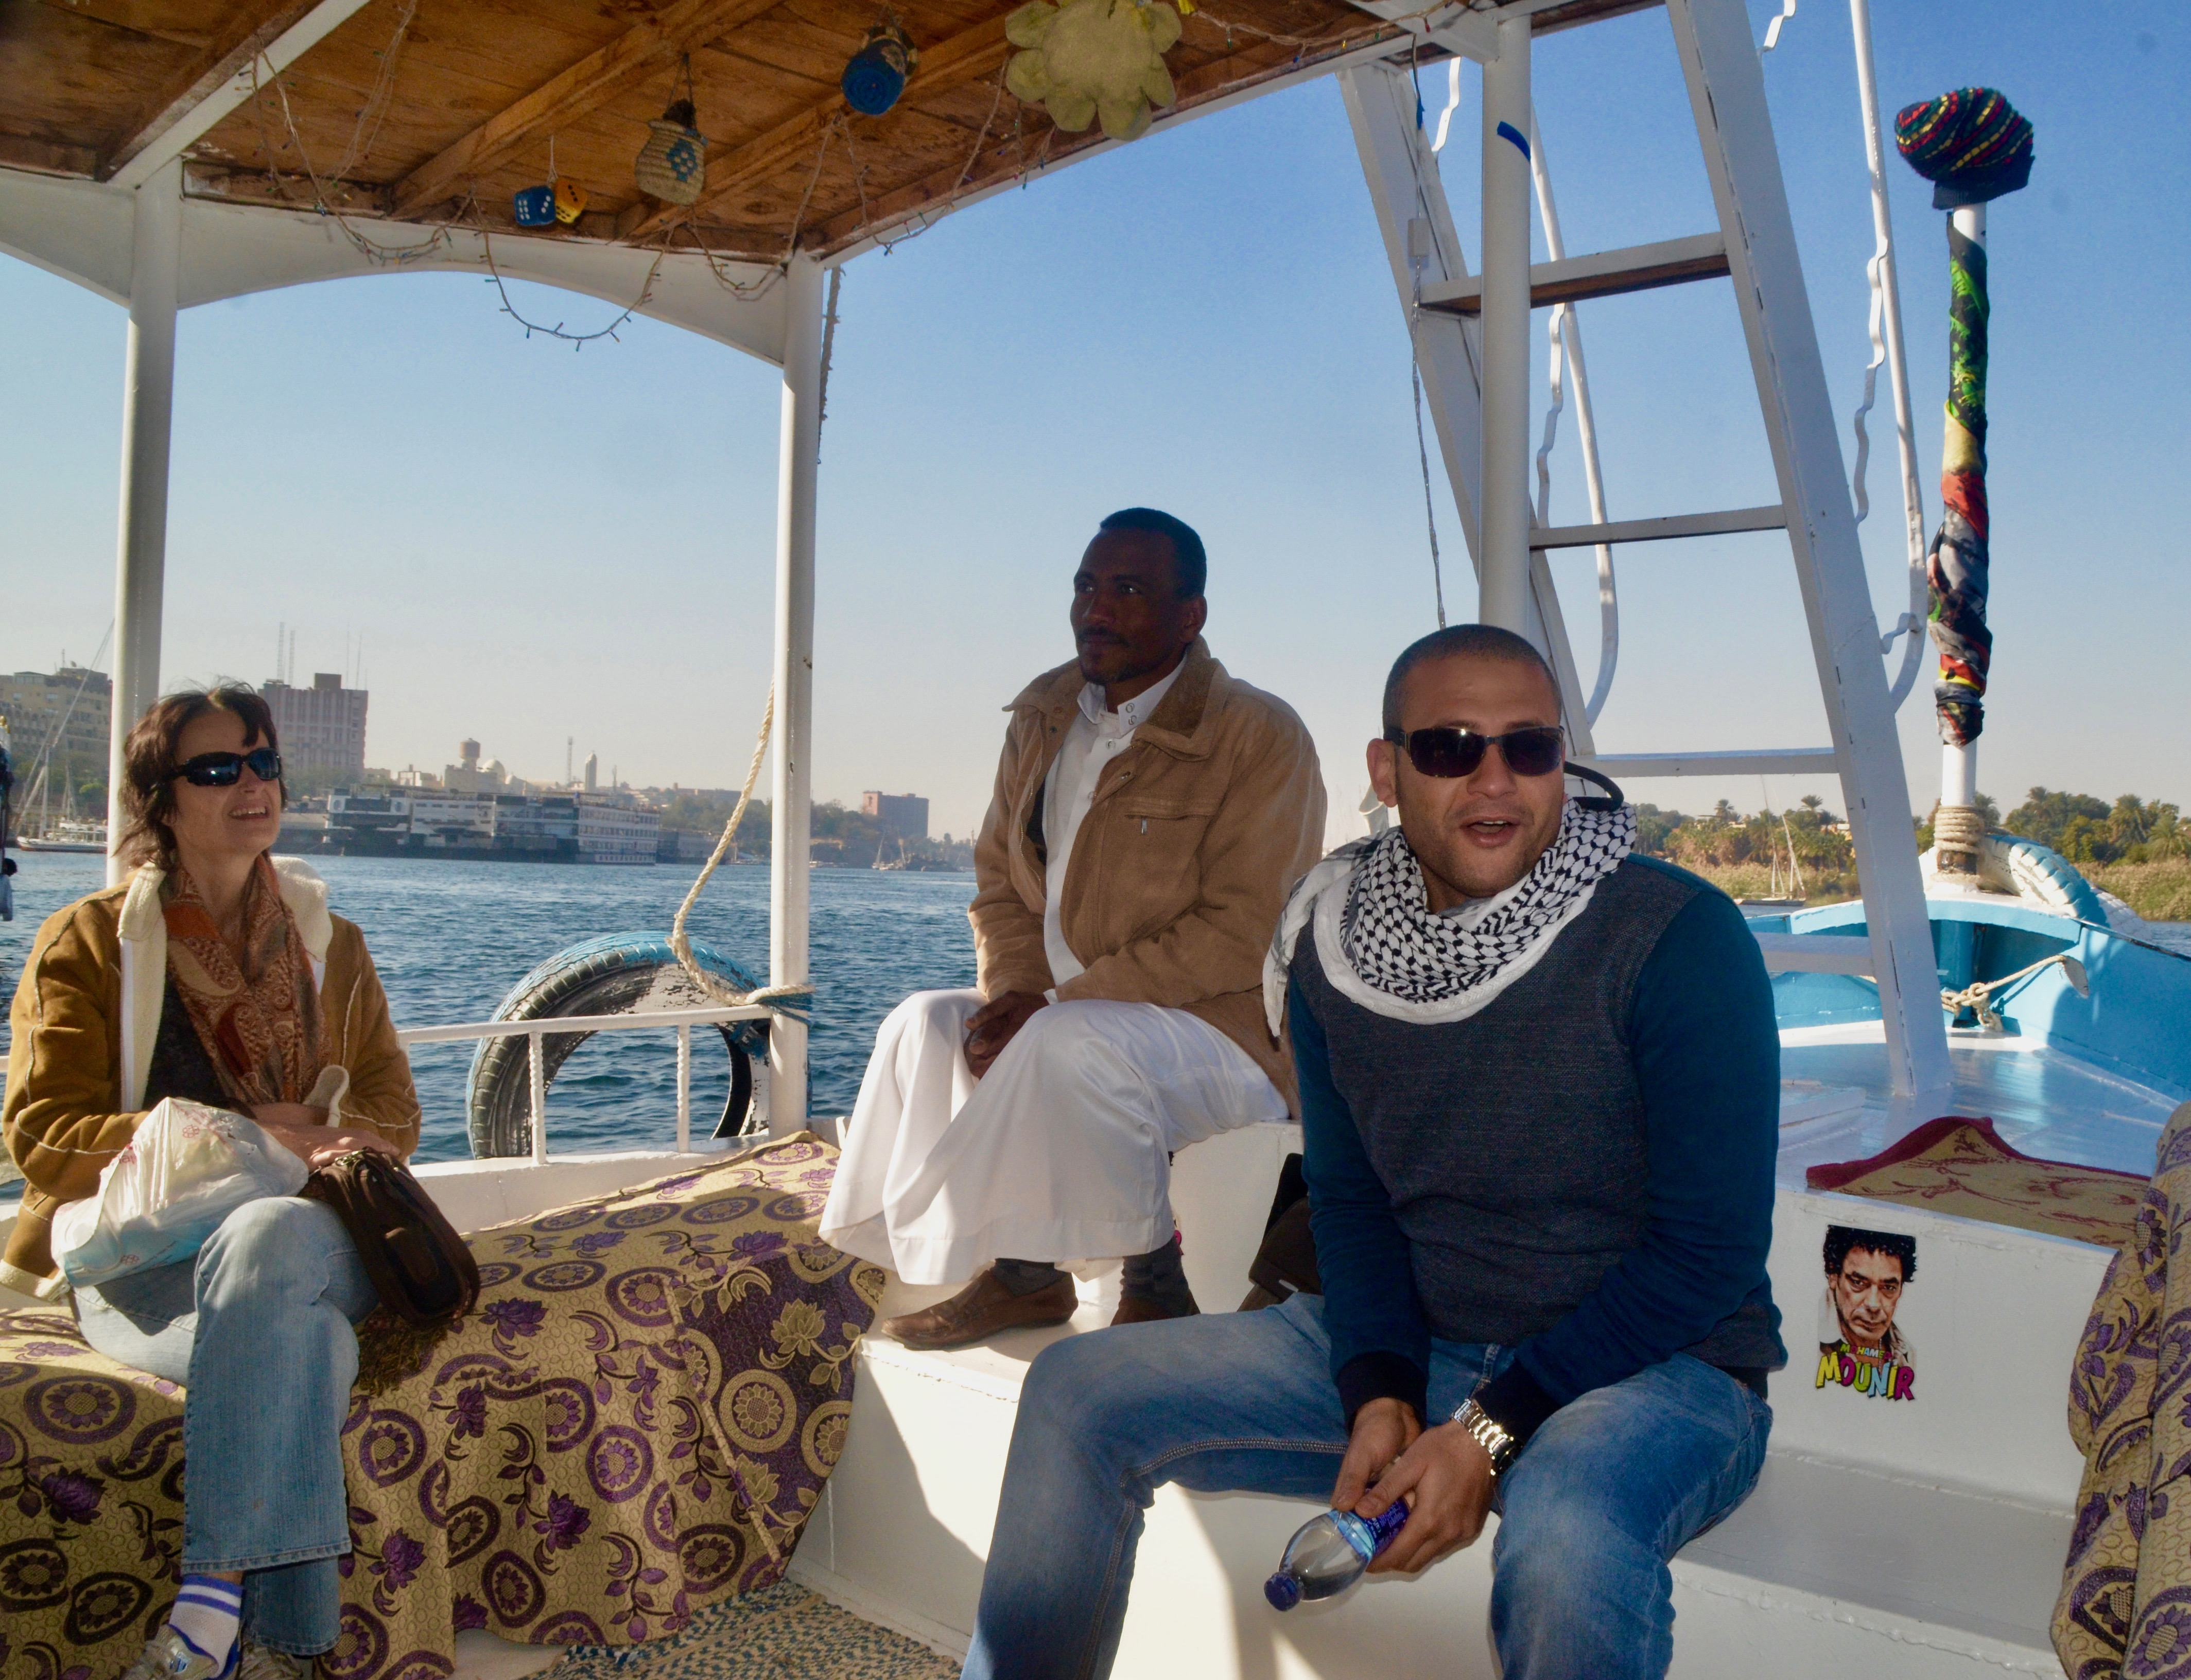 On the Nile with Ahmed